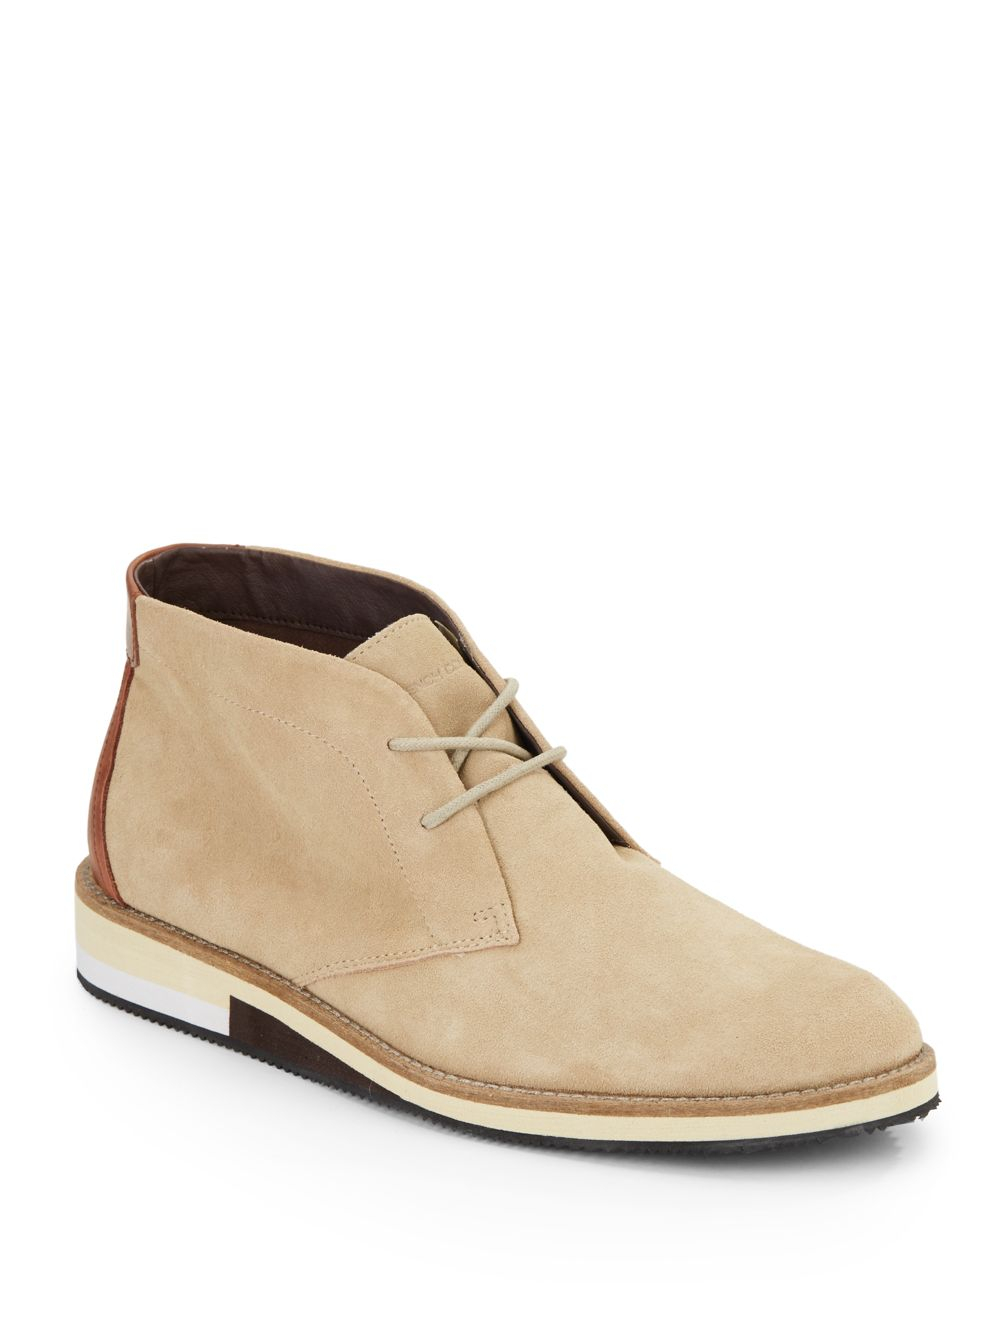 French connection Corian Suede Chukka Boots in Natural for Men | Lyst